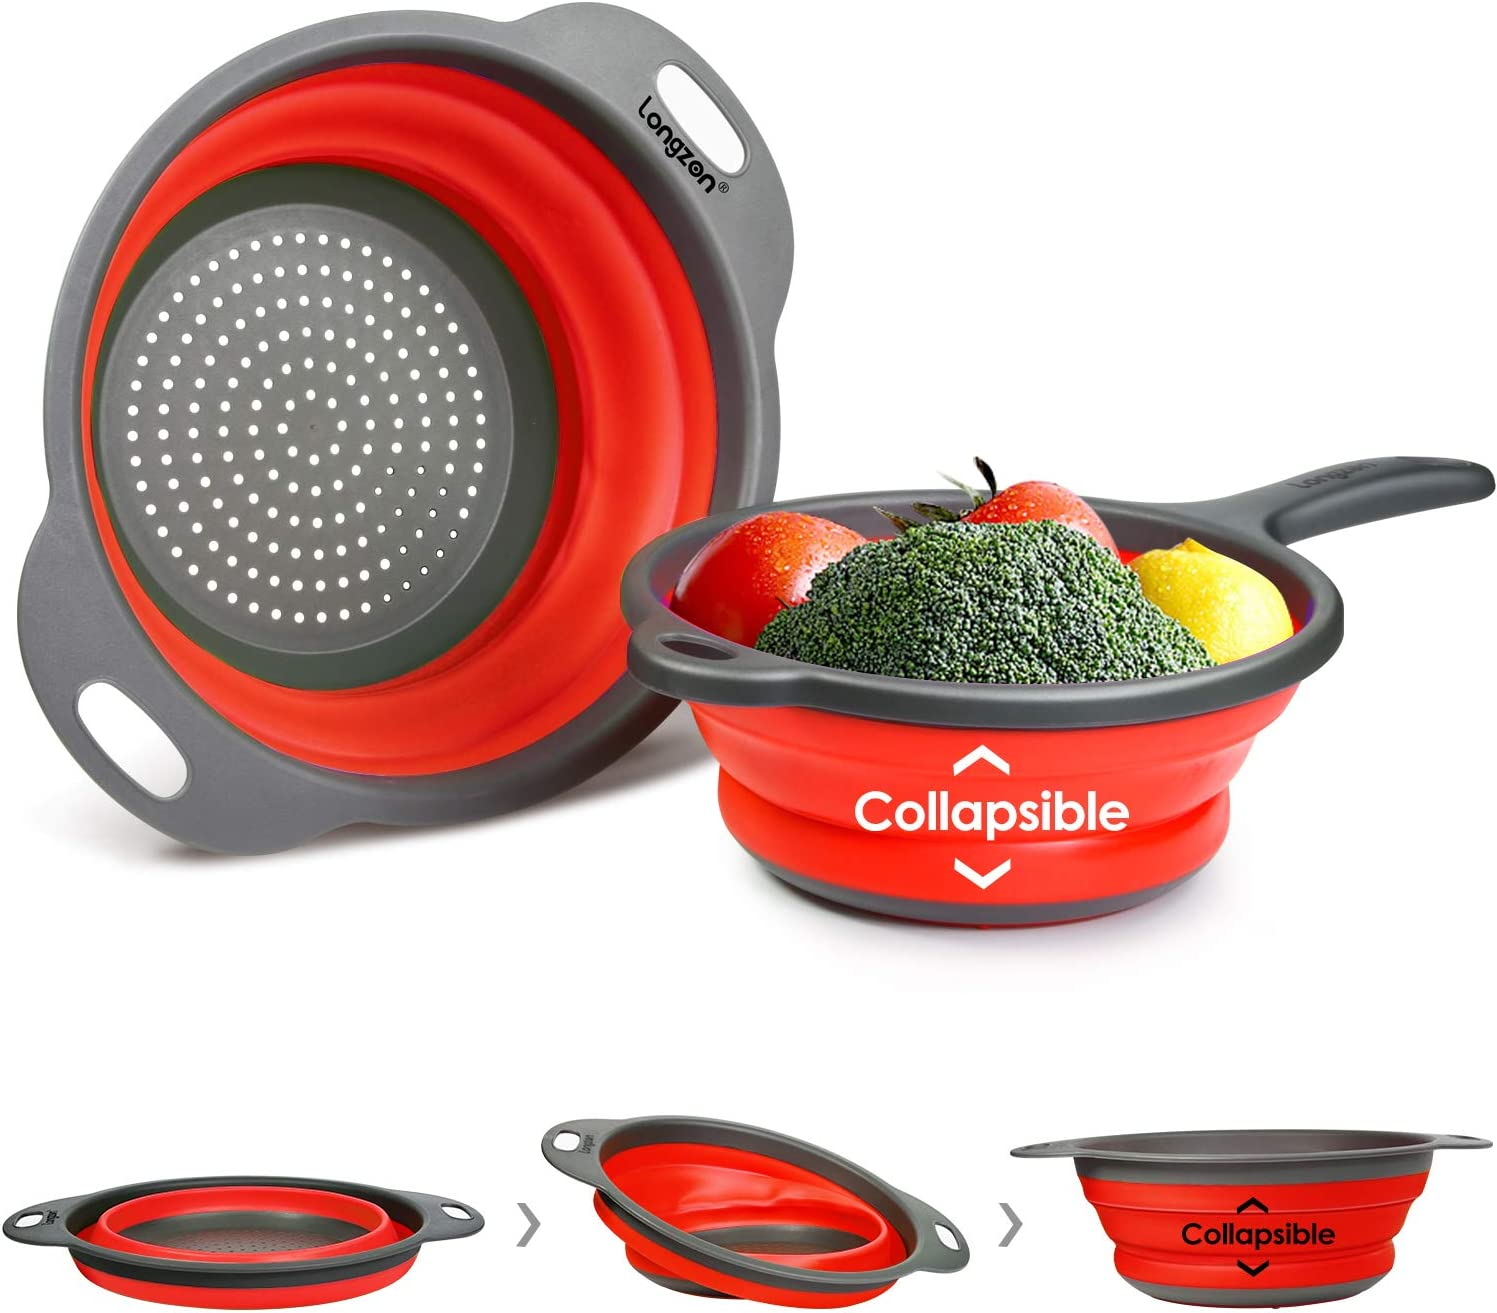 "Longzon 2 Collapsible Colander Strainer Set, Over the Sink Vegetable/Fruit Silicone Colanders Strainers with Extendable Handles 2 Quart and 9.5"" - 3 Quart Red and Grey"